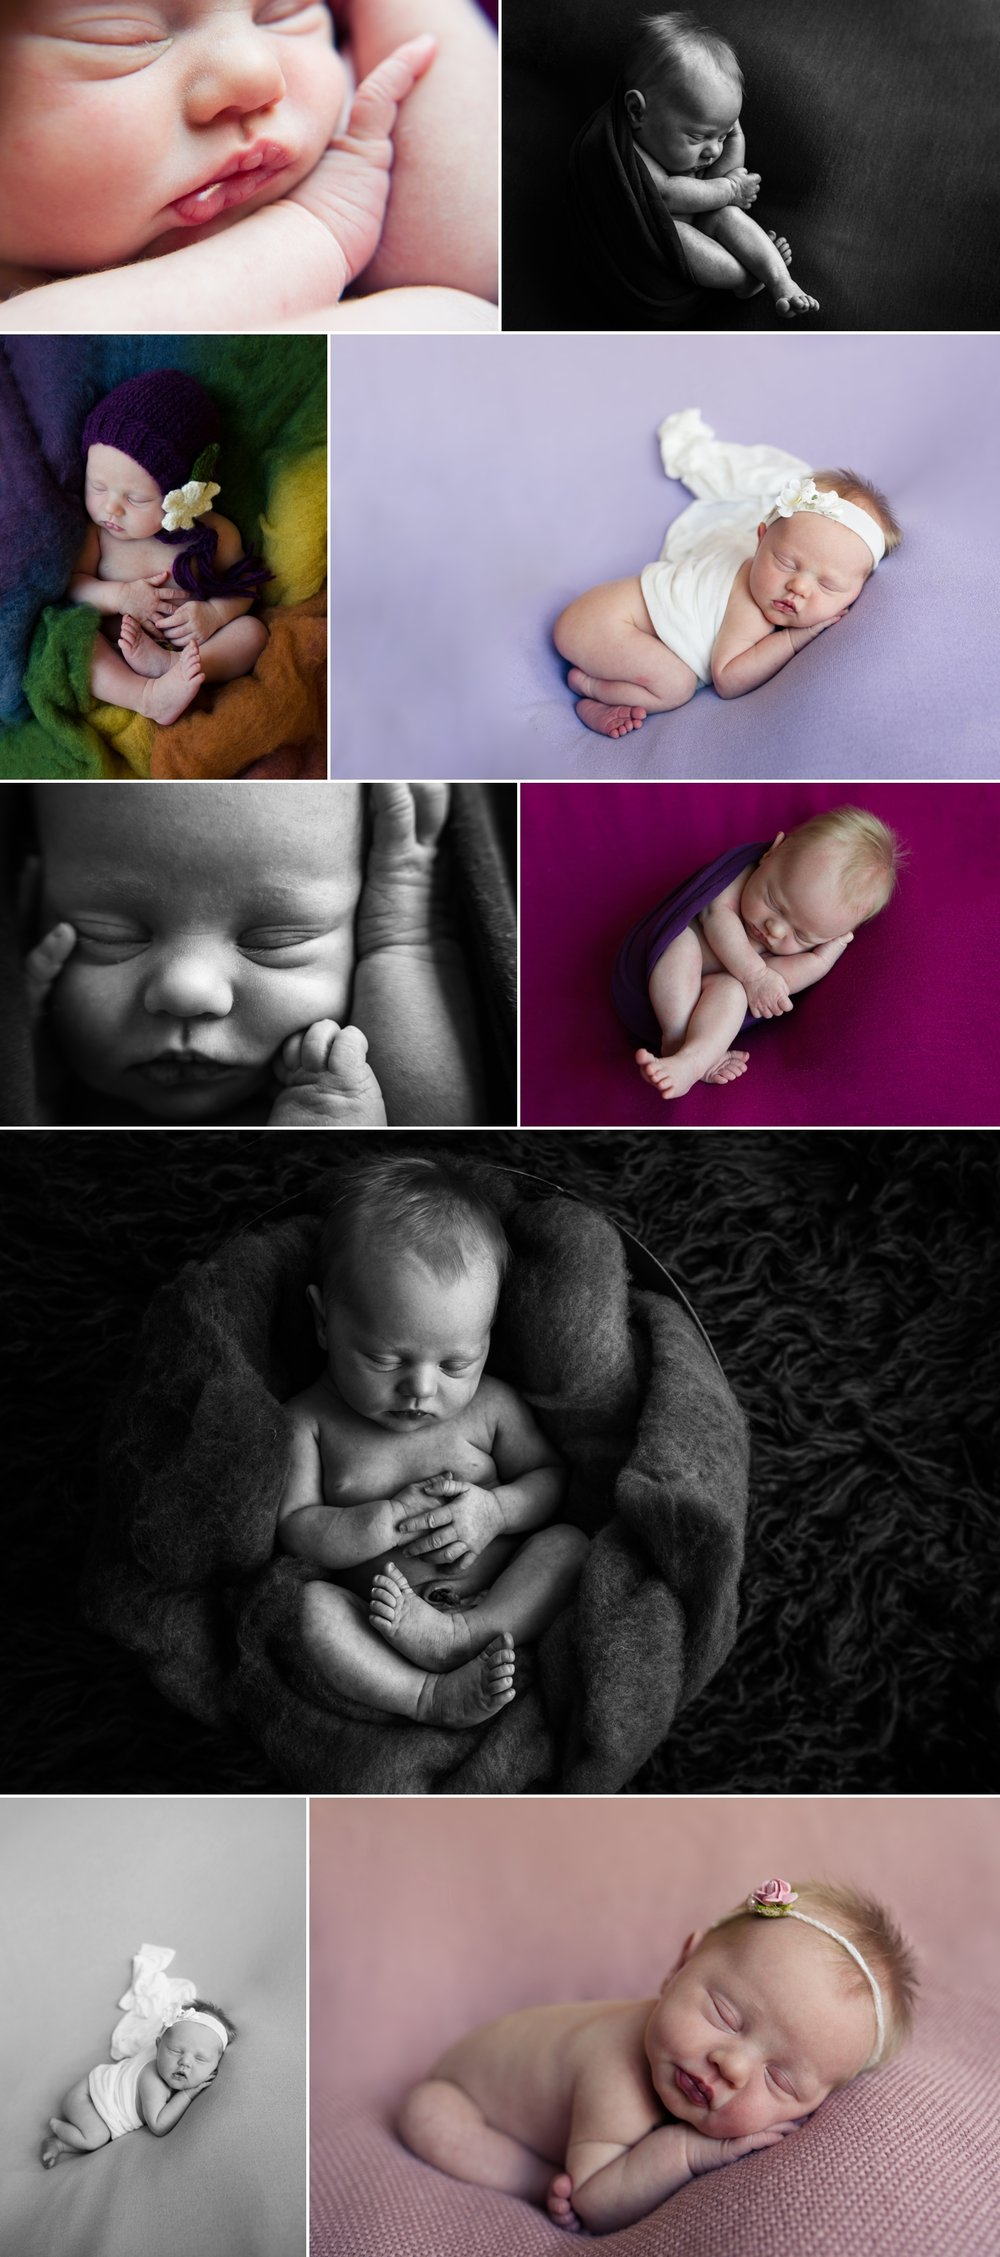 Newborn-baby-photographer-at-home-2.jpg